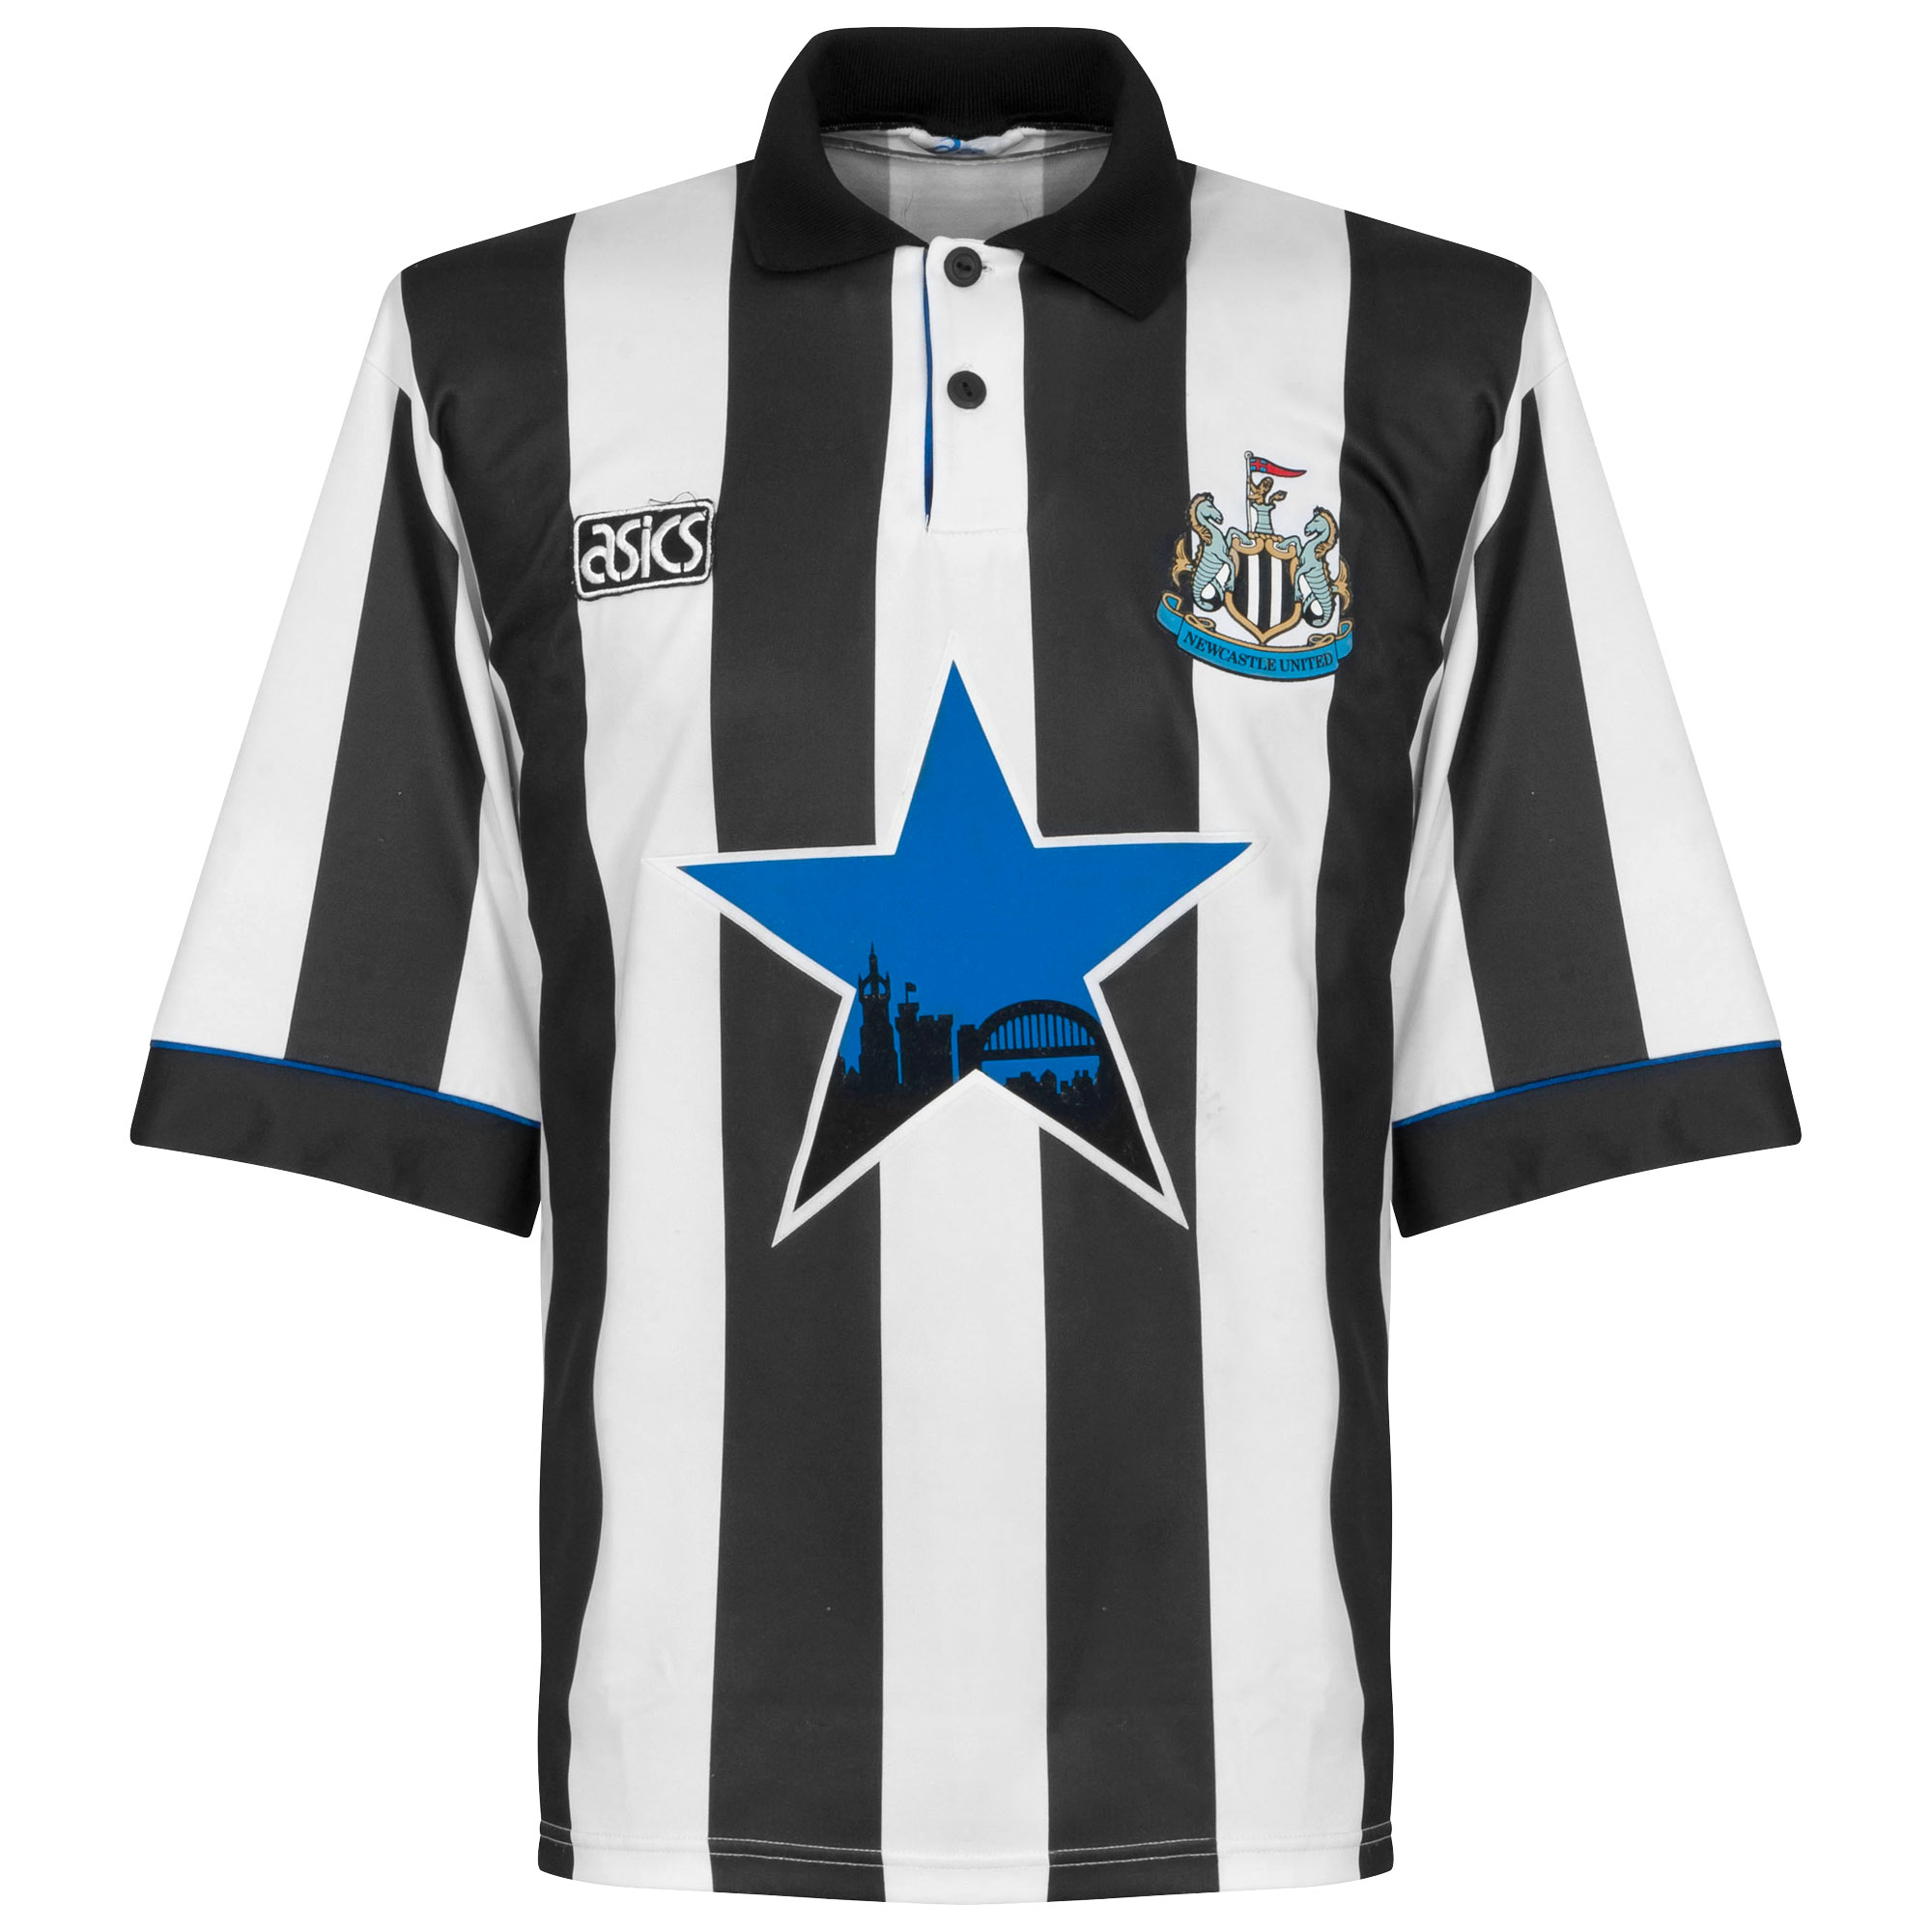 Asics Newcastle United 1993-1995 Home Shirt - USED Condition (Great) - Size